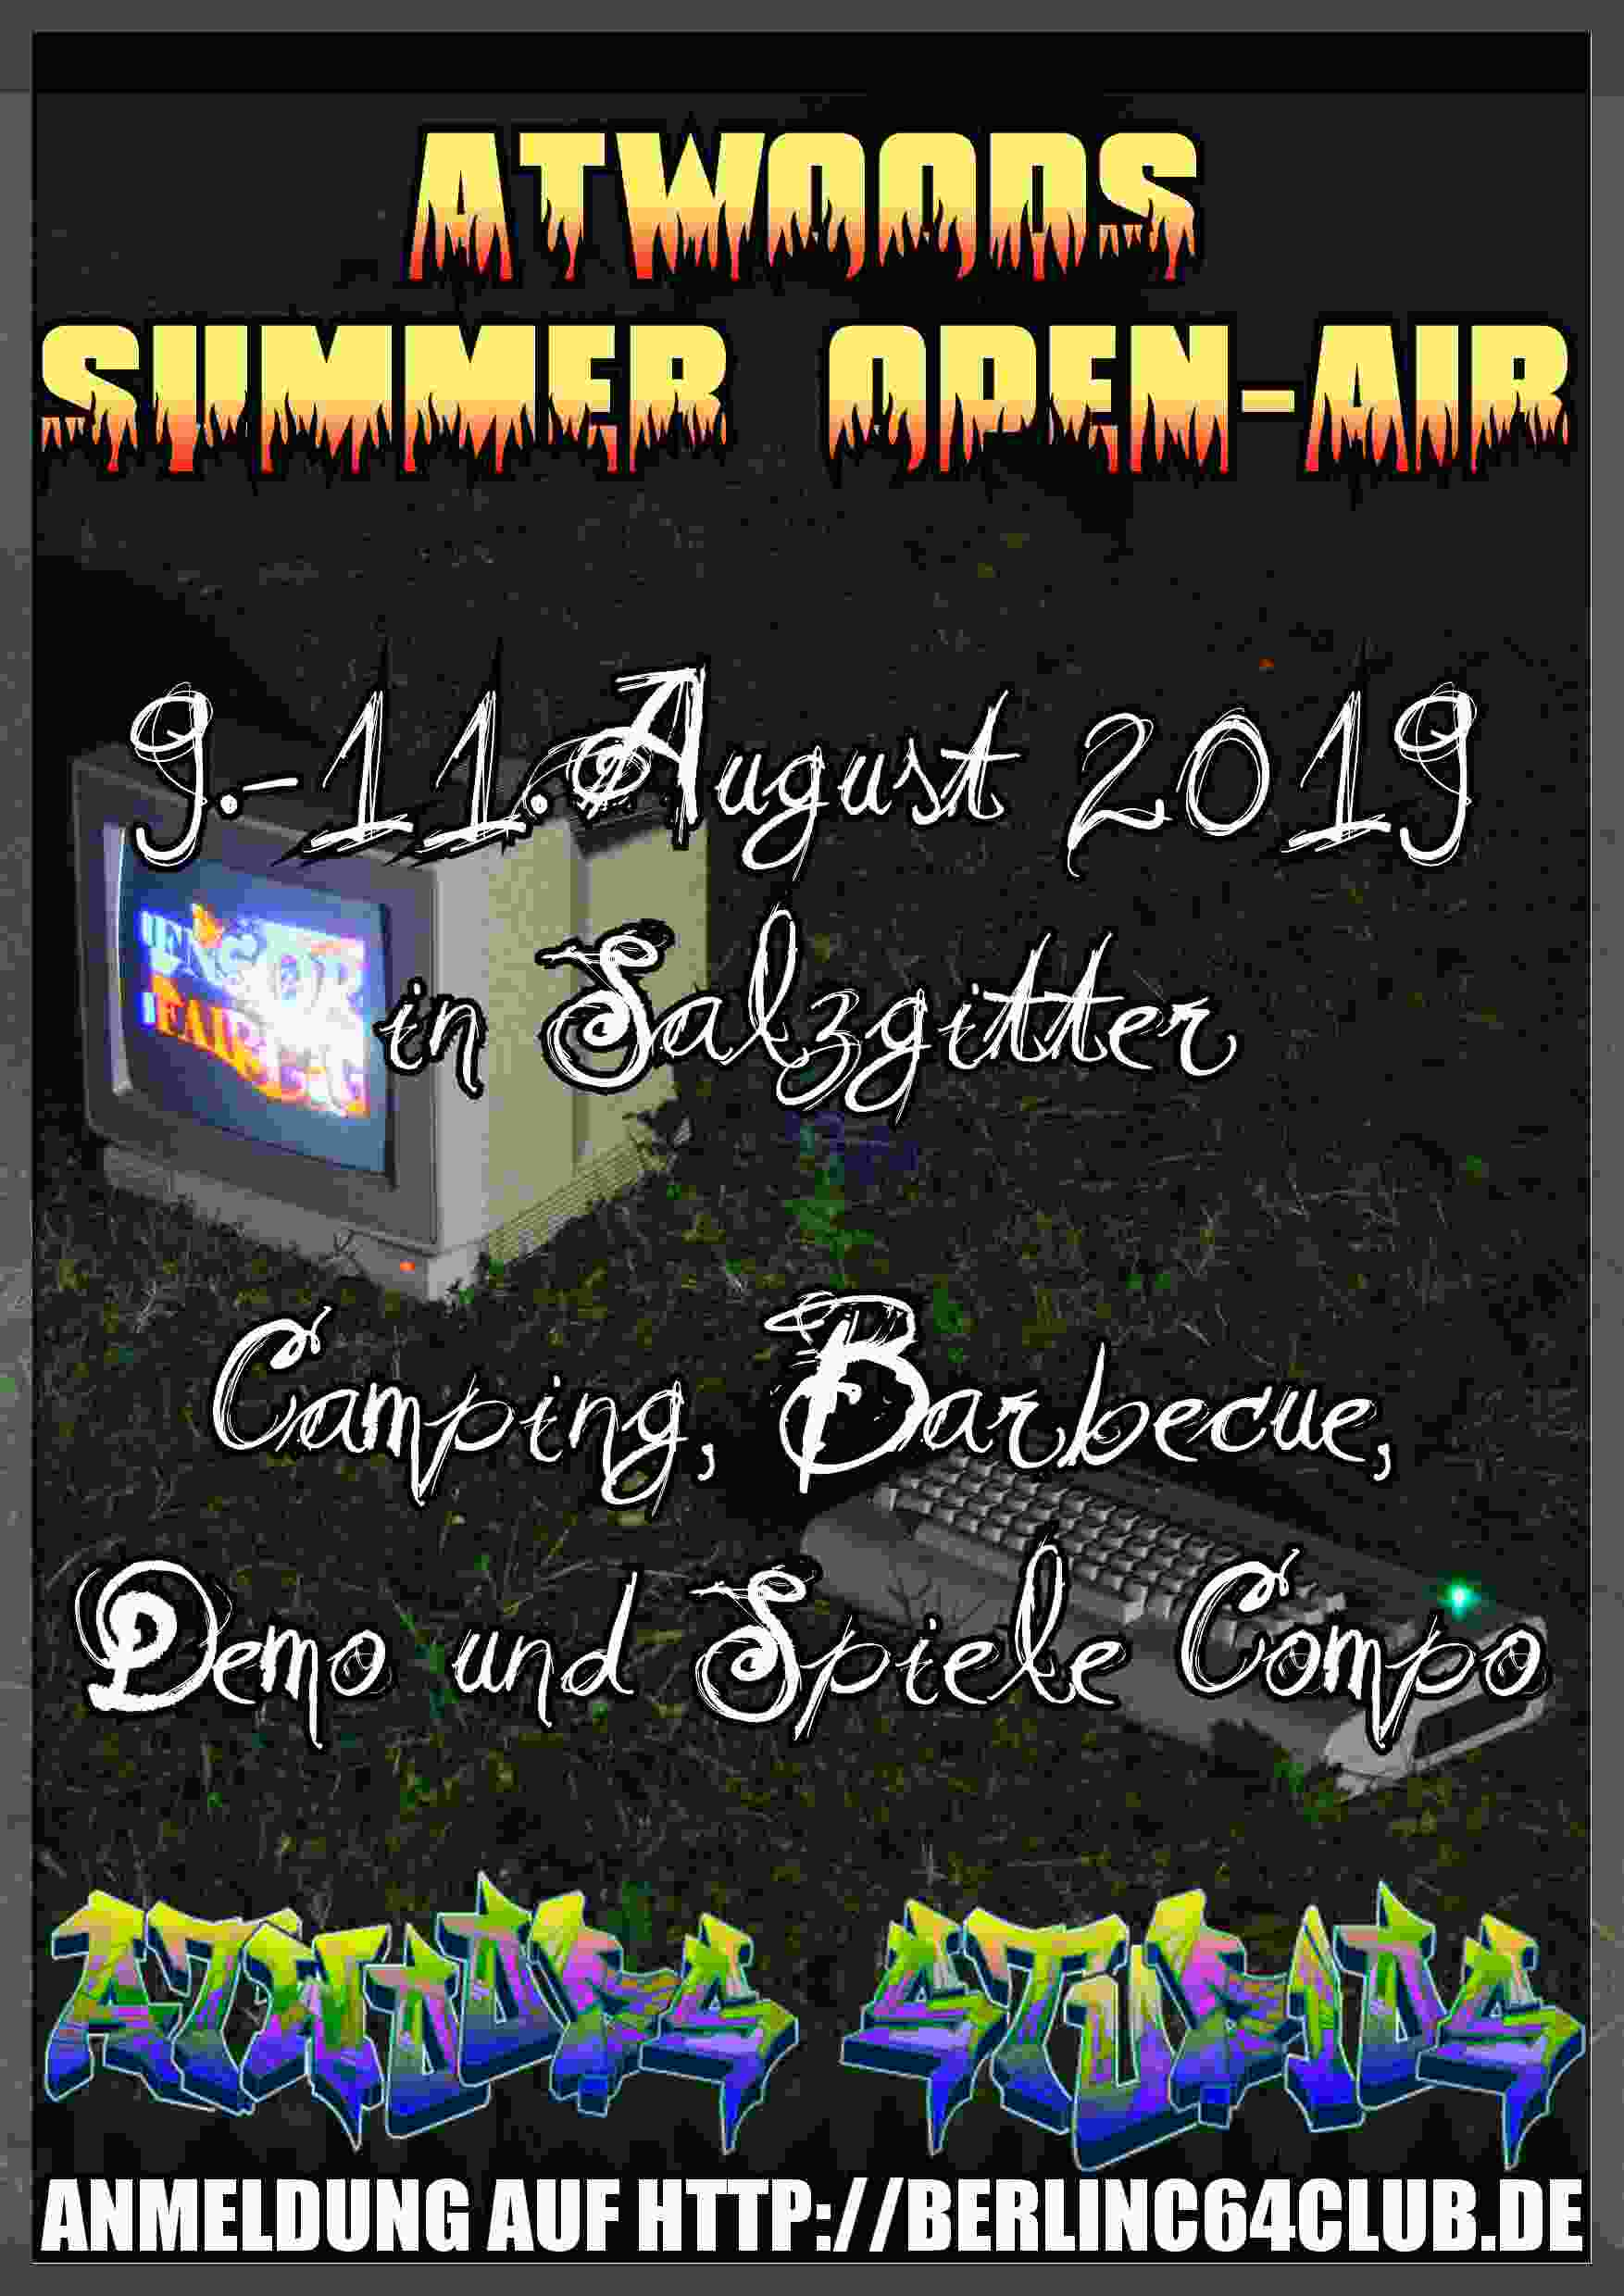 ATWOODS Summer Open-Air 2019